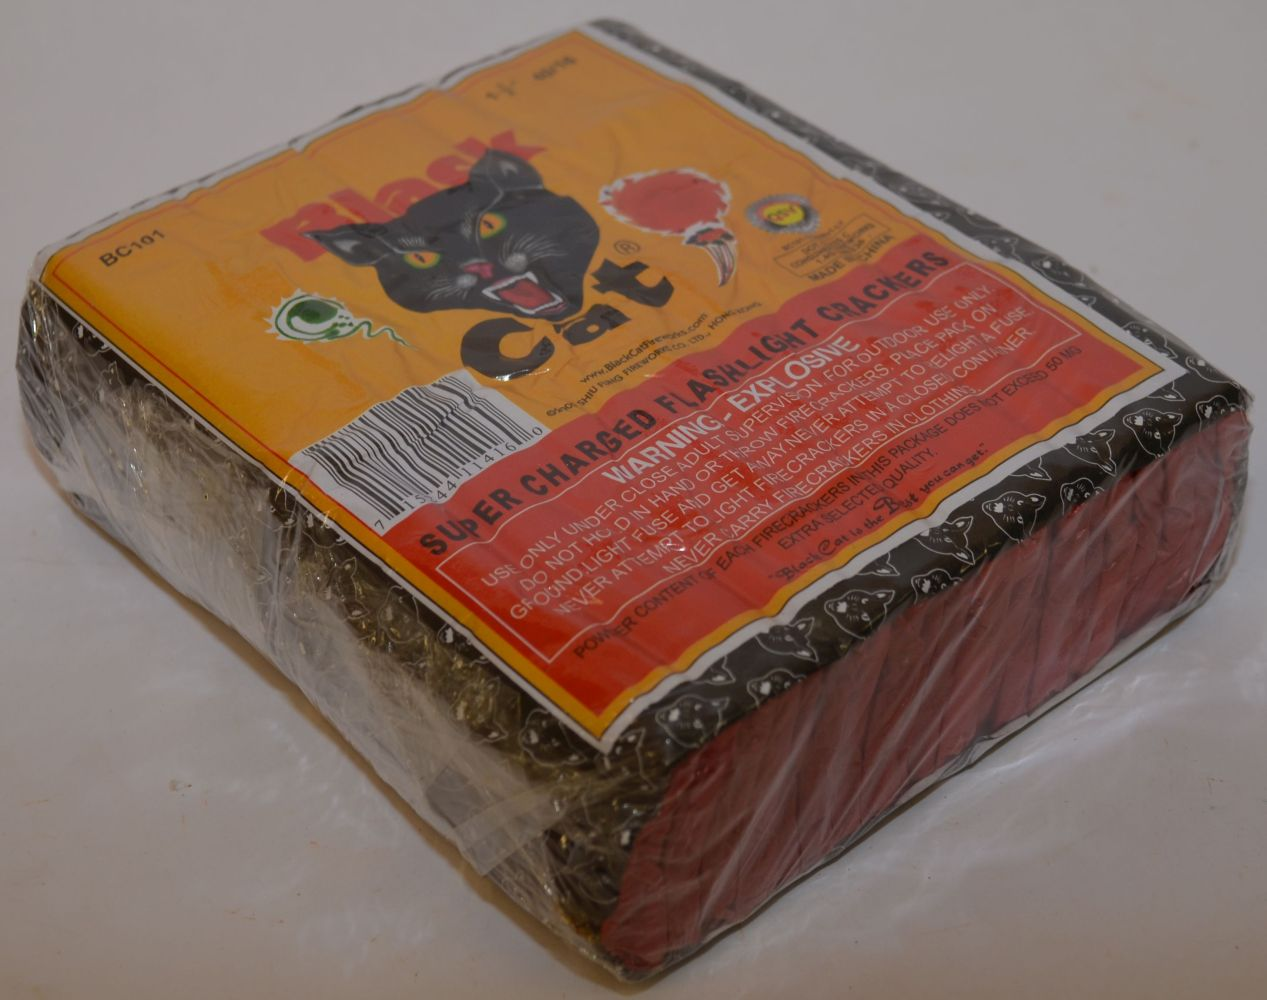 Black Cat Fireworks Wholesale Prices